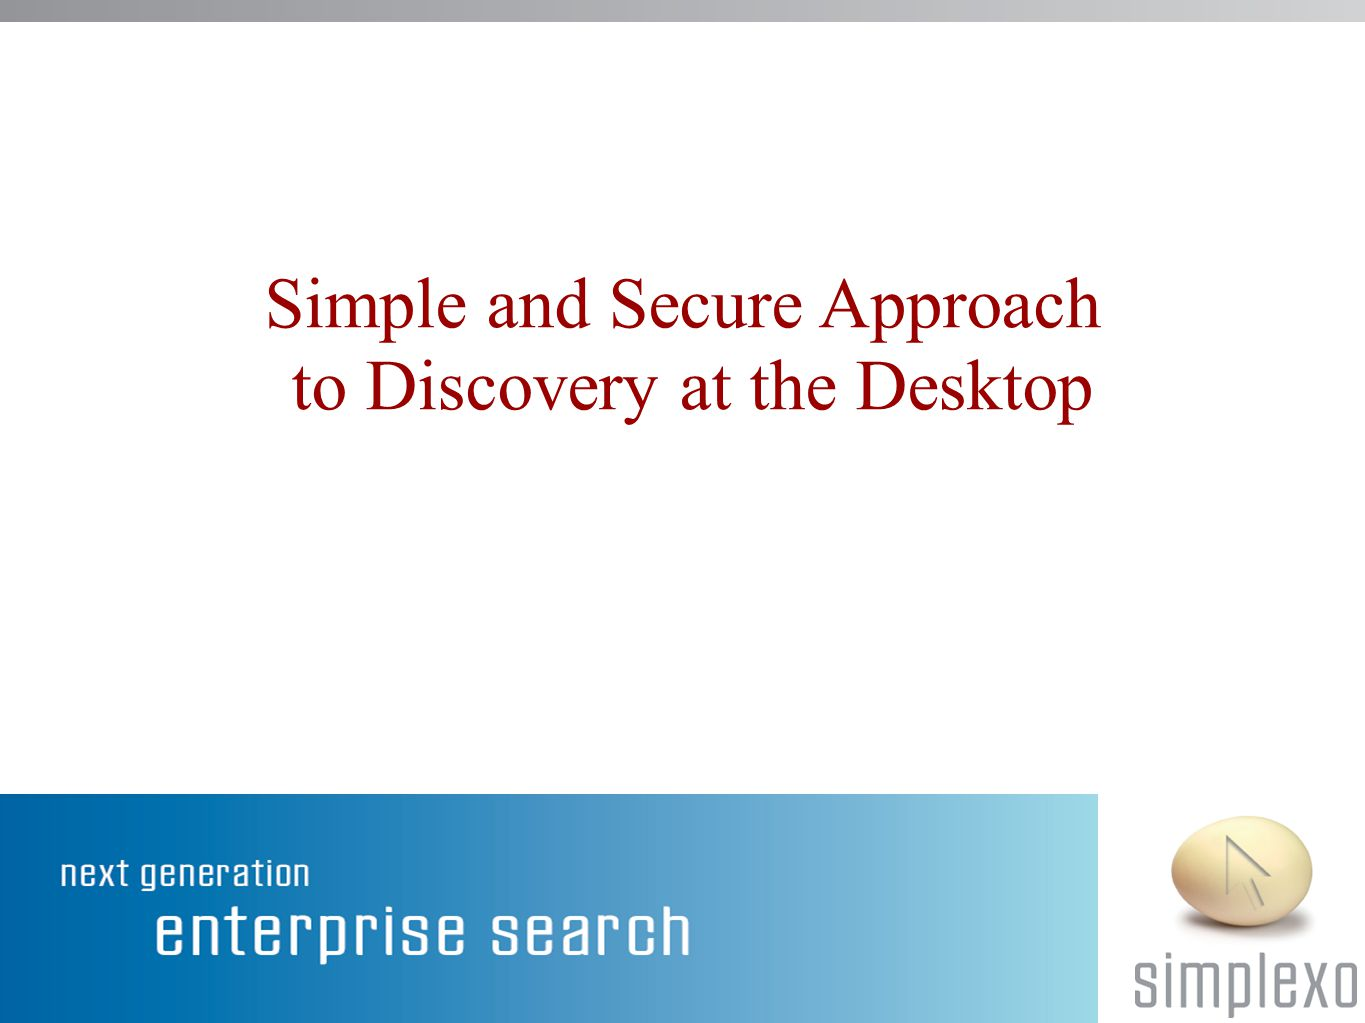 Simple and Secure Approach to Discovery at the Desktop